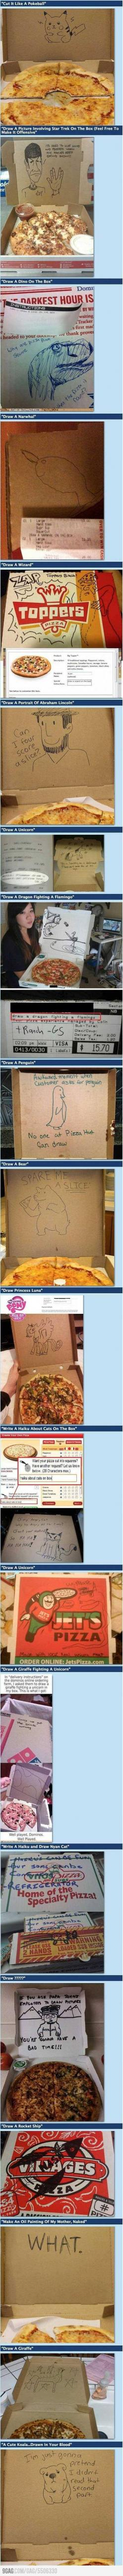 Extra requests from online pizza orders. Doing this.: Drawing Requests, Giggle, Pizza Boxes, Funny Stuff, Pizza Place, Order Pizza